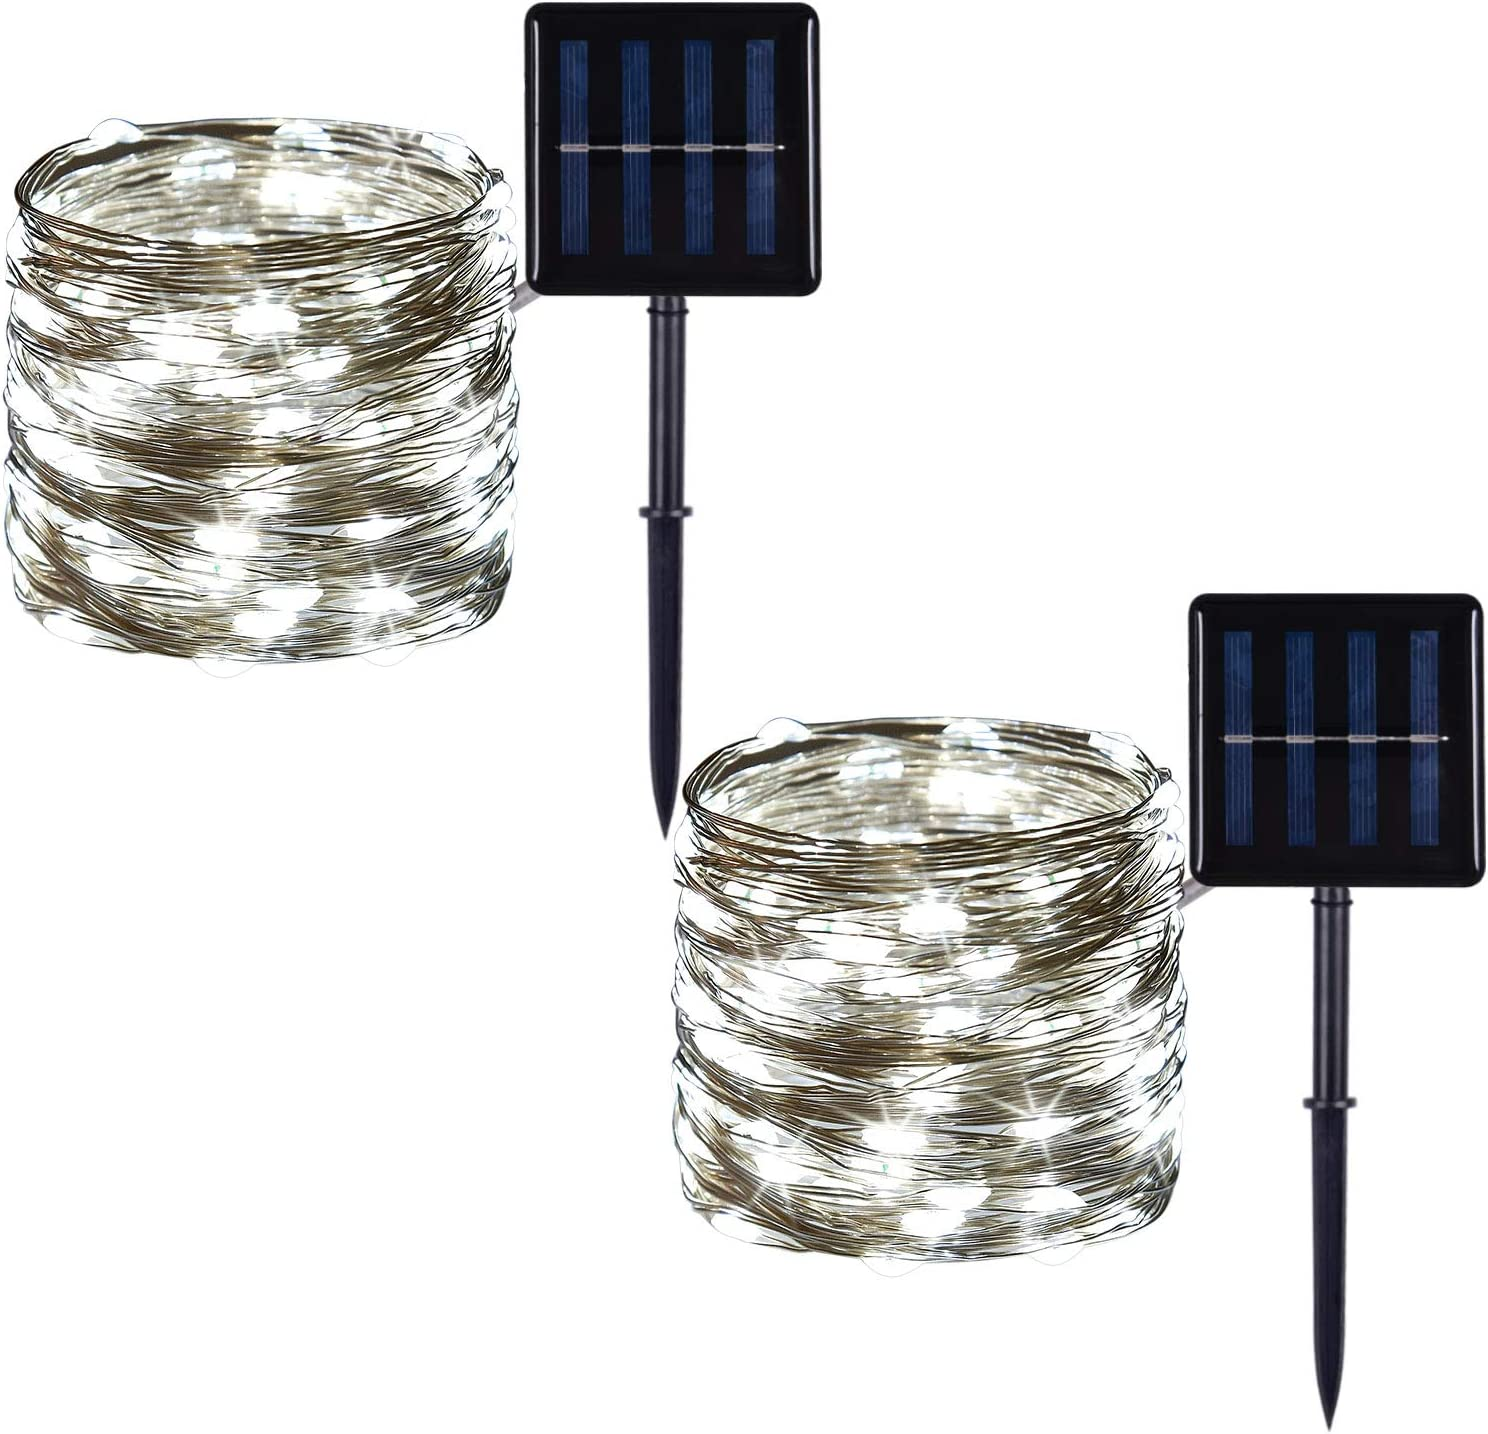 2 Pack 100 LED Solar Powered Copper Wire String Lights Outdoor, Waterproof, 8 Modes Fairy Lights for Garden, Patio, Party, Yard, Christmas (White)